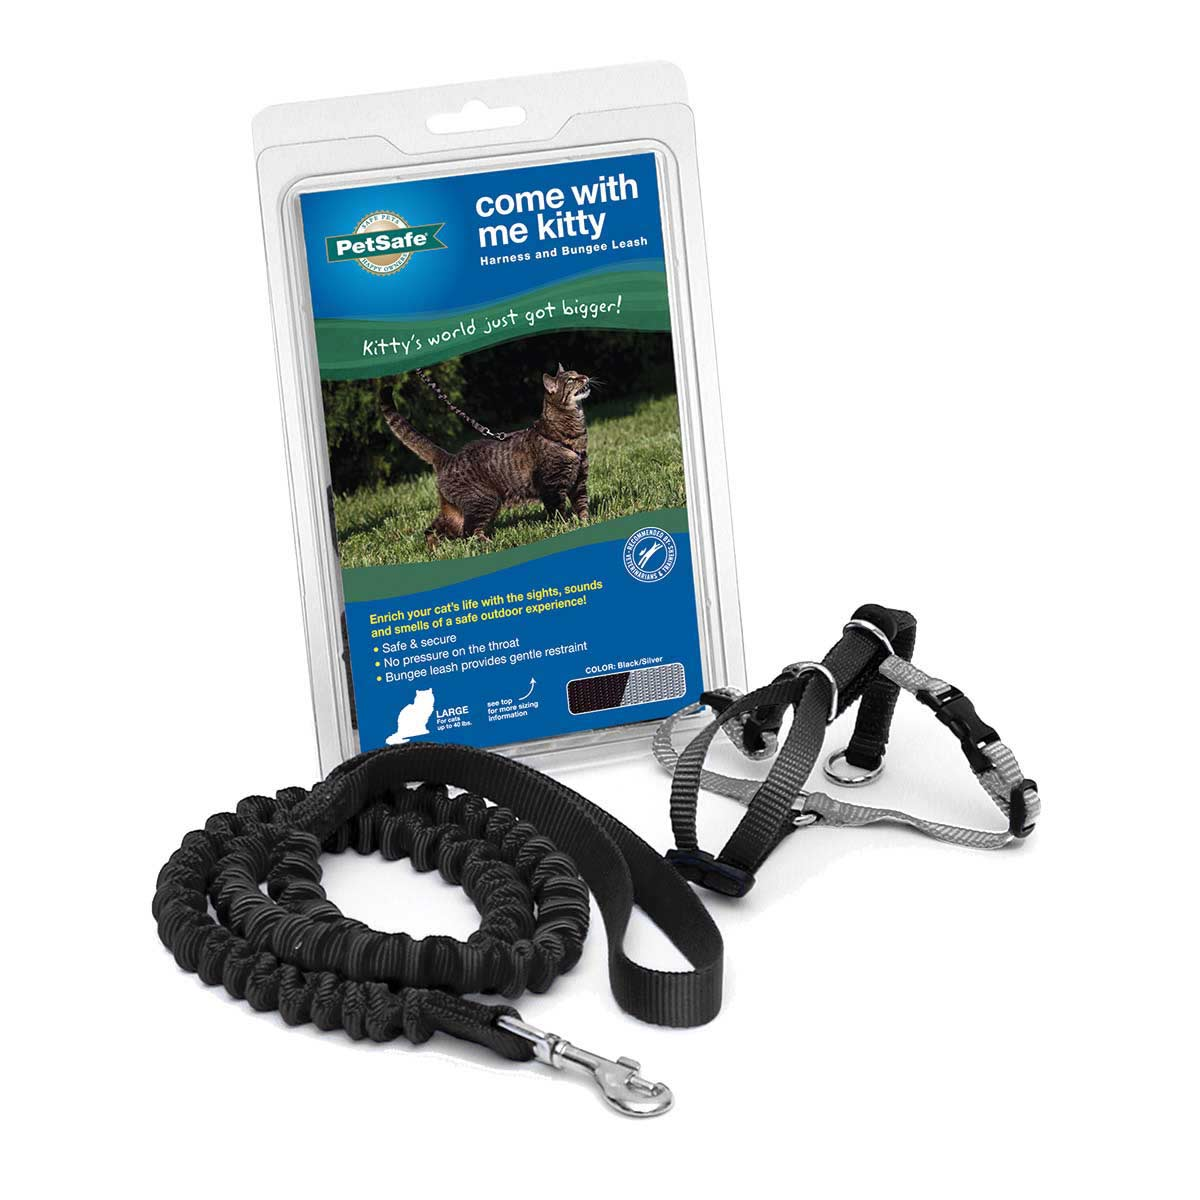 PetSafe Come With Me Kitty Harness and Bungee Leash for Cats - Black 9 inches - 11 inches